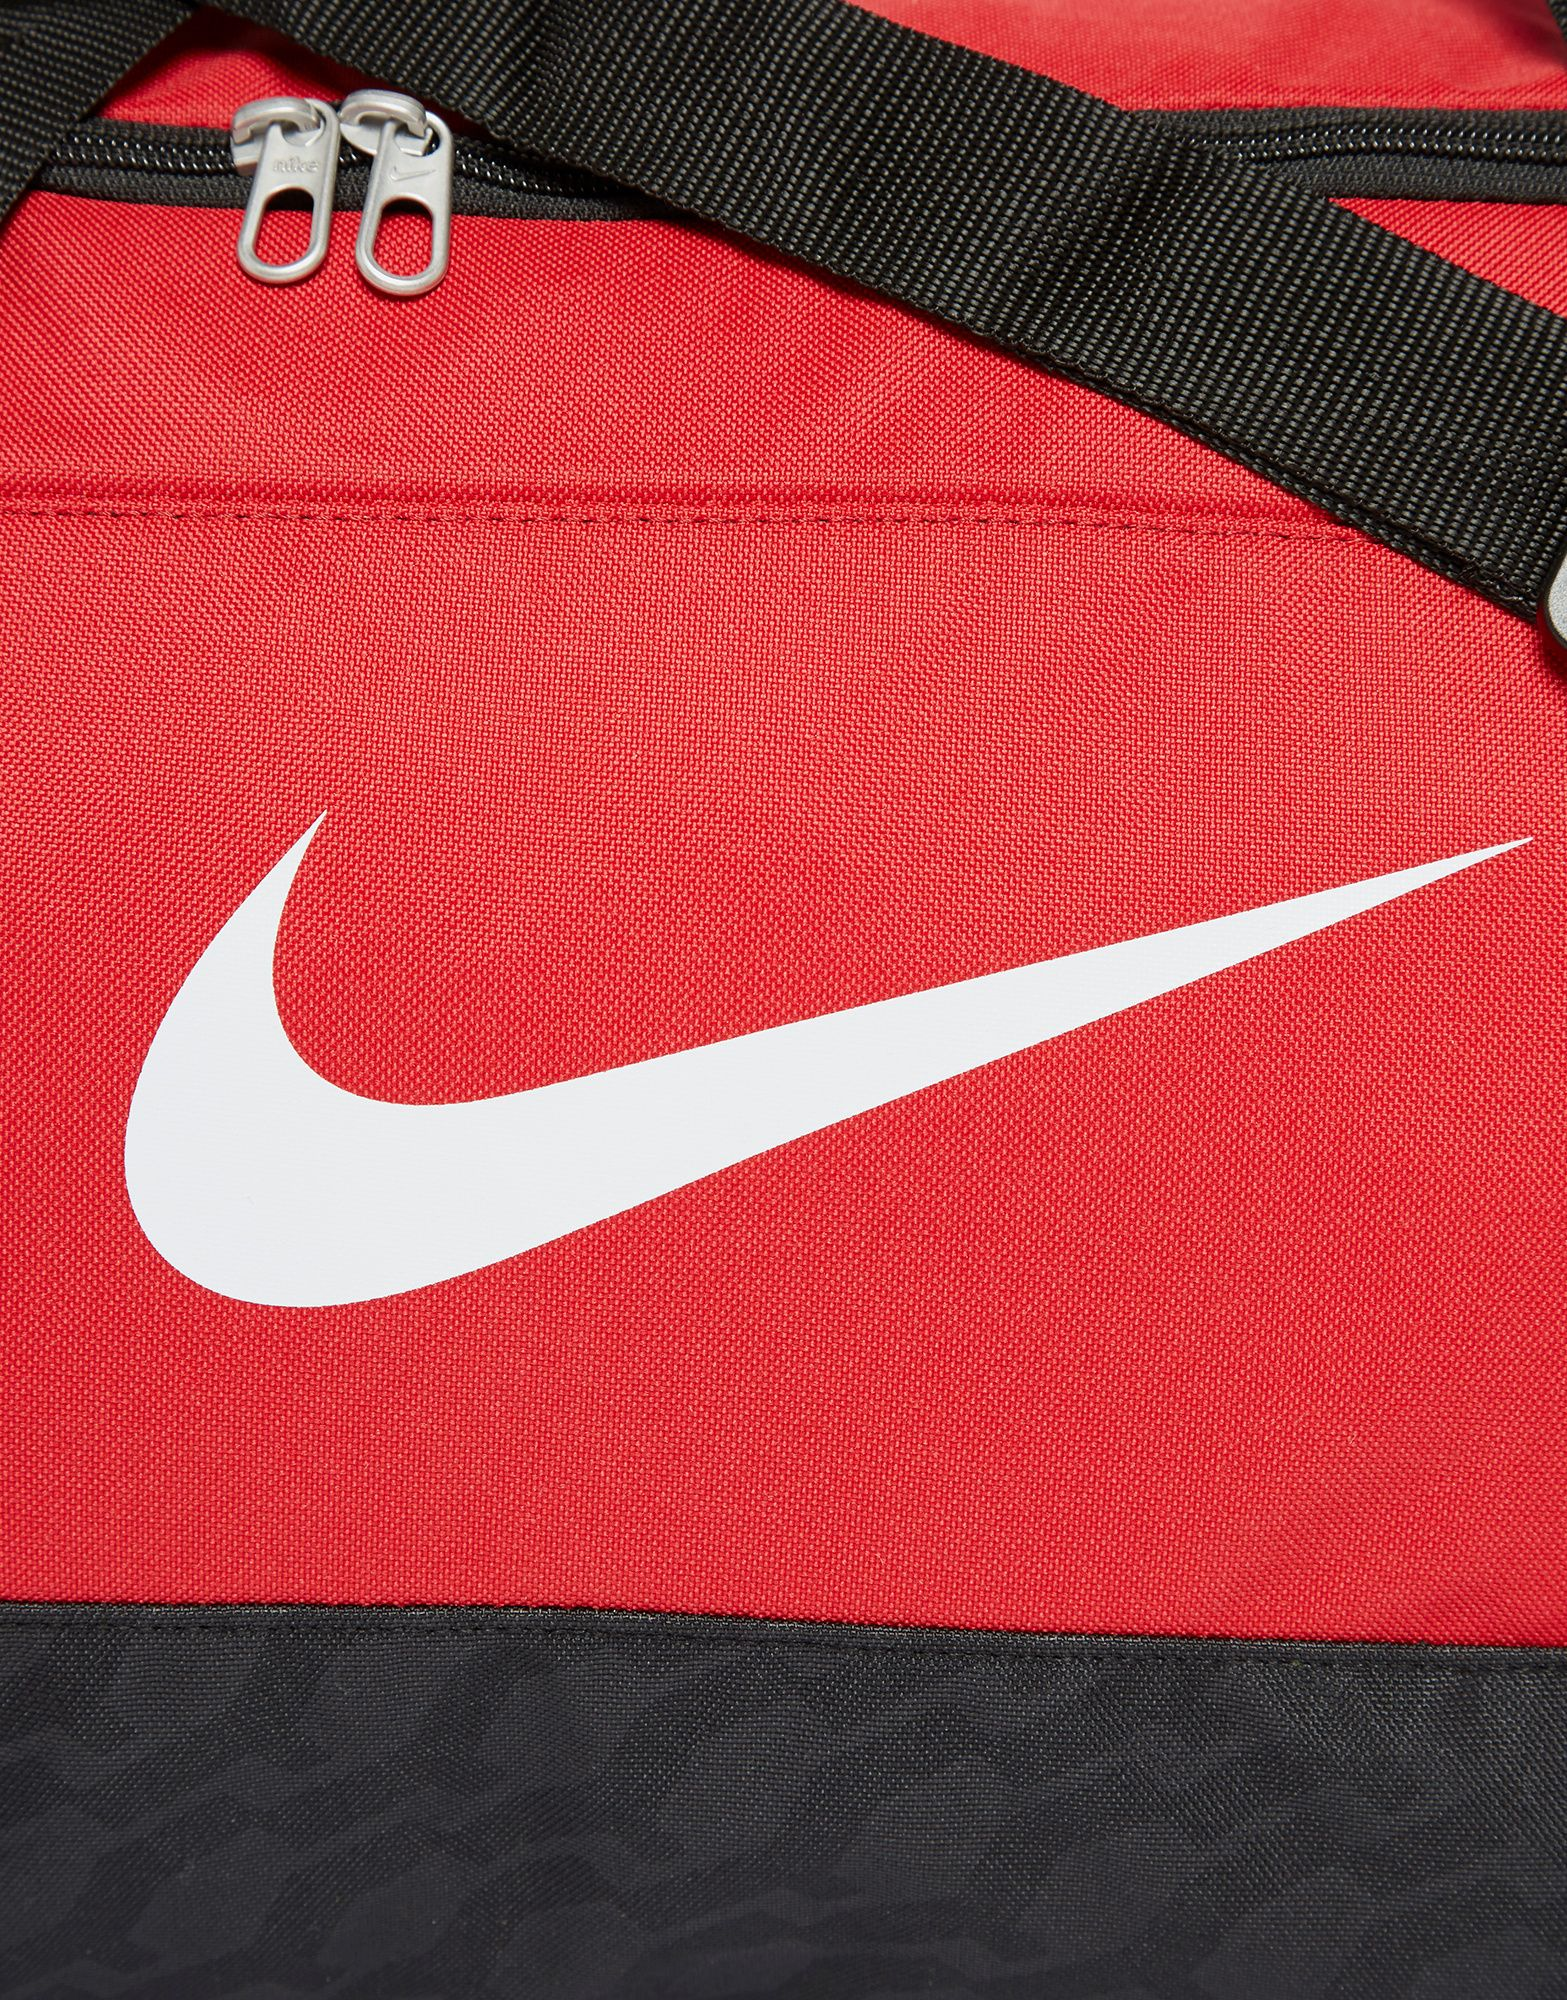 Nike Brasilia Small Duffle Bag